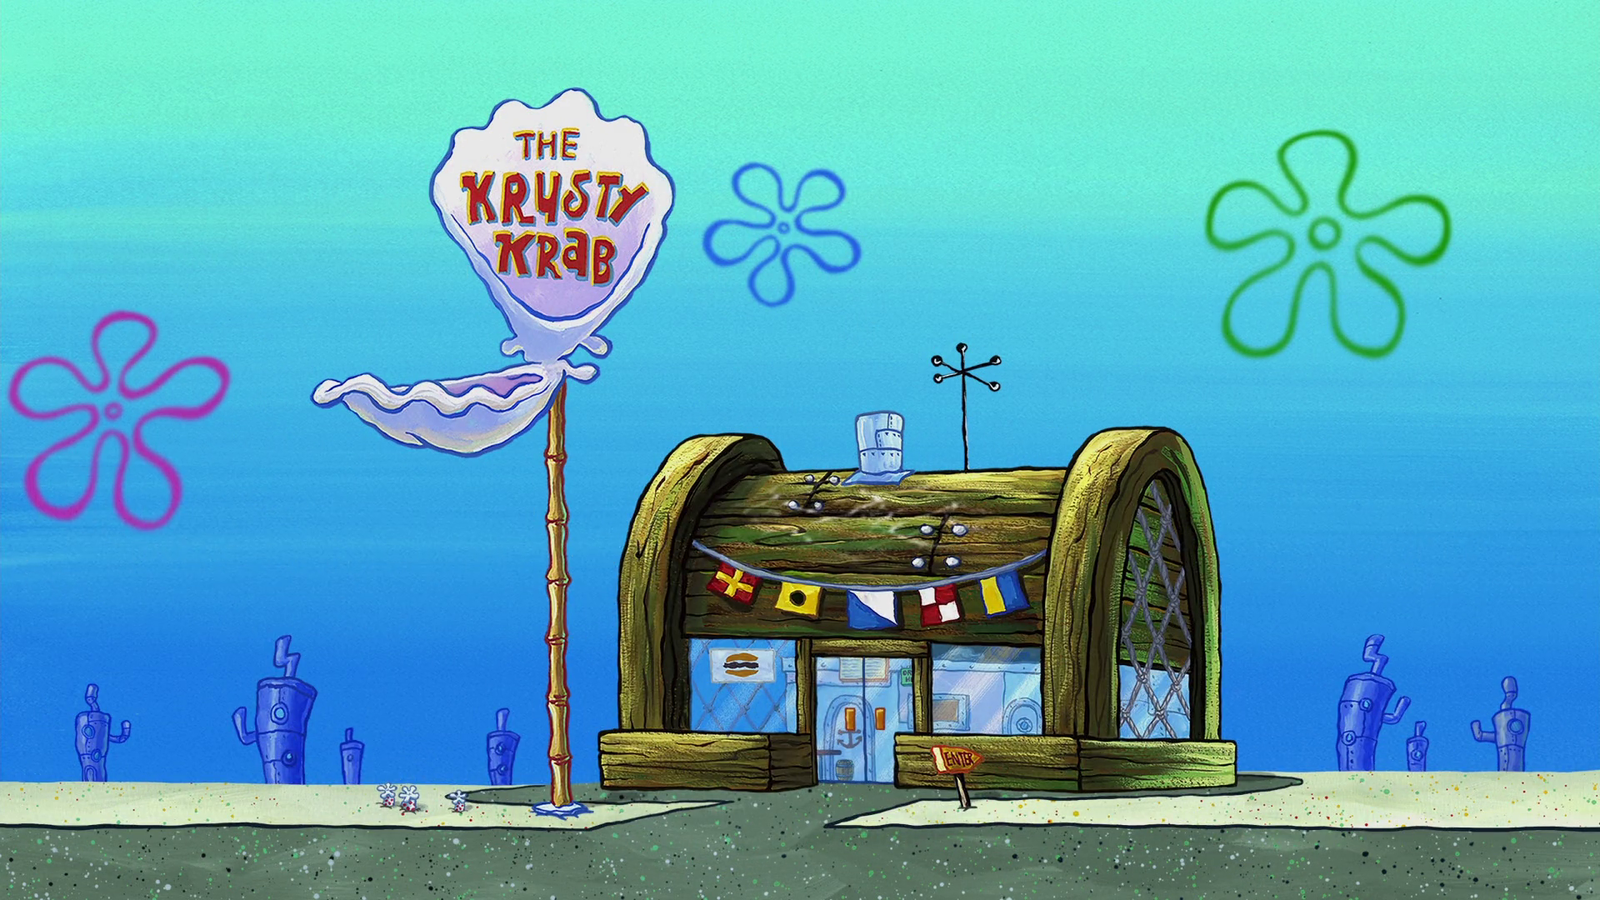 Nickledeons show spongebob squarepants has brought us many memes and this time its the chum bucket vs the krusty krab people have been using the krusty